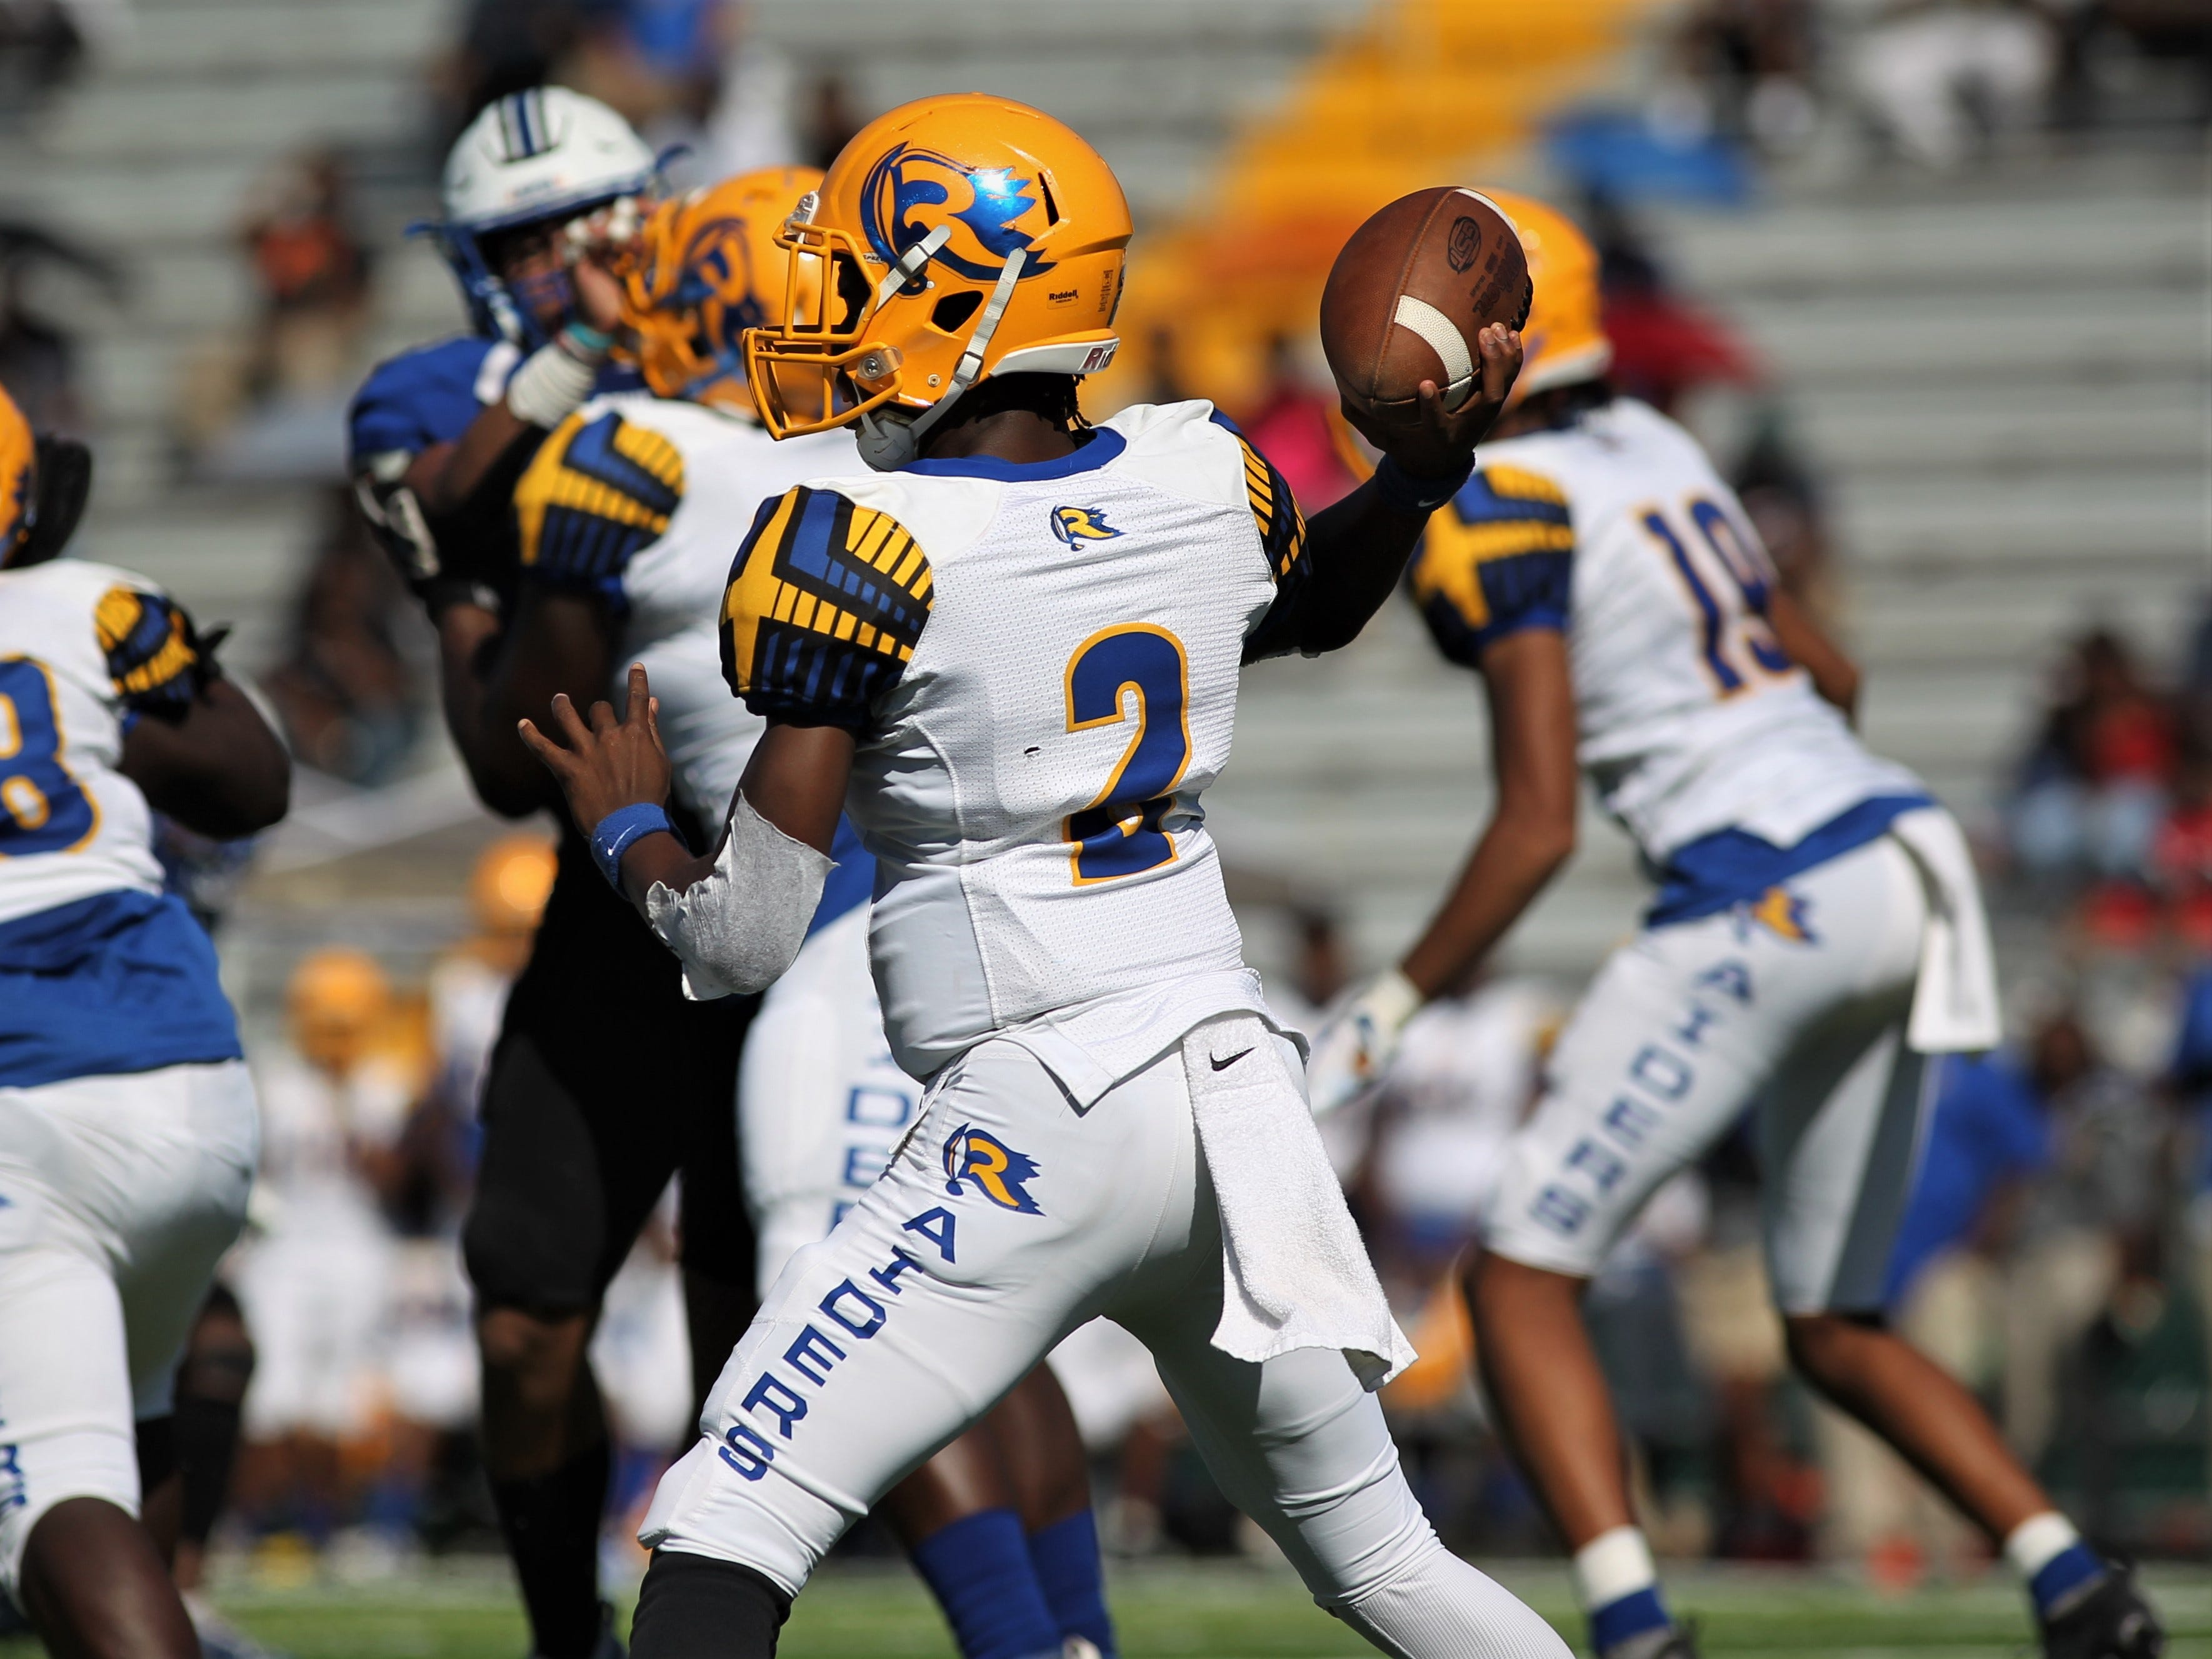 Rickards quarterback Greg Winters throws a pass against Godby.